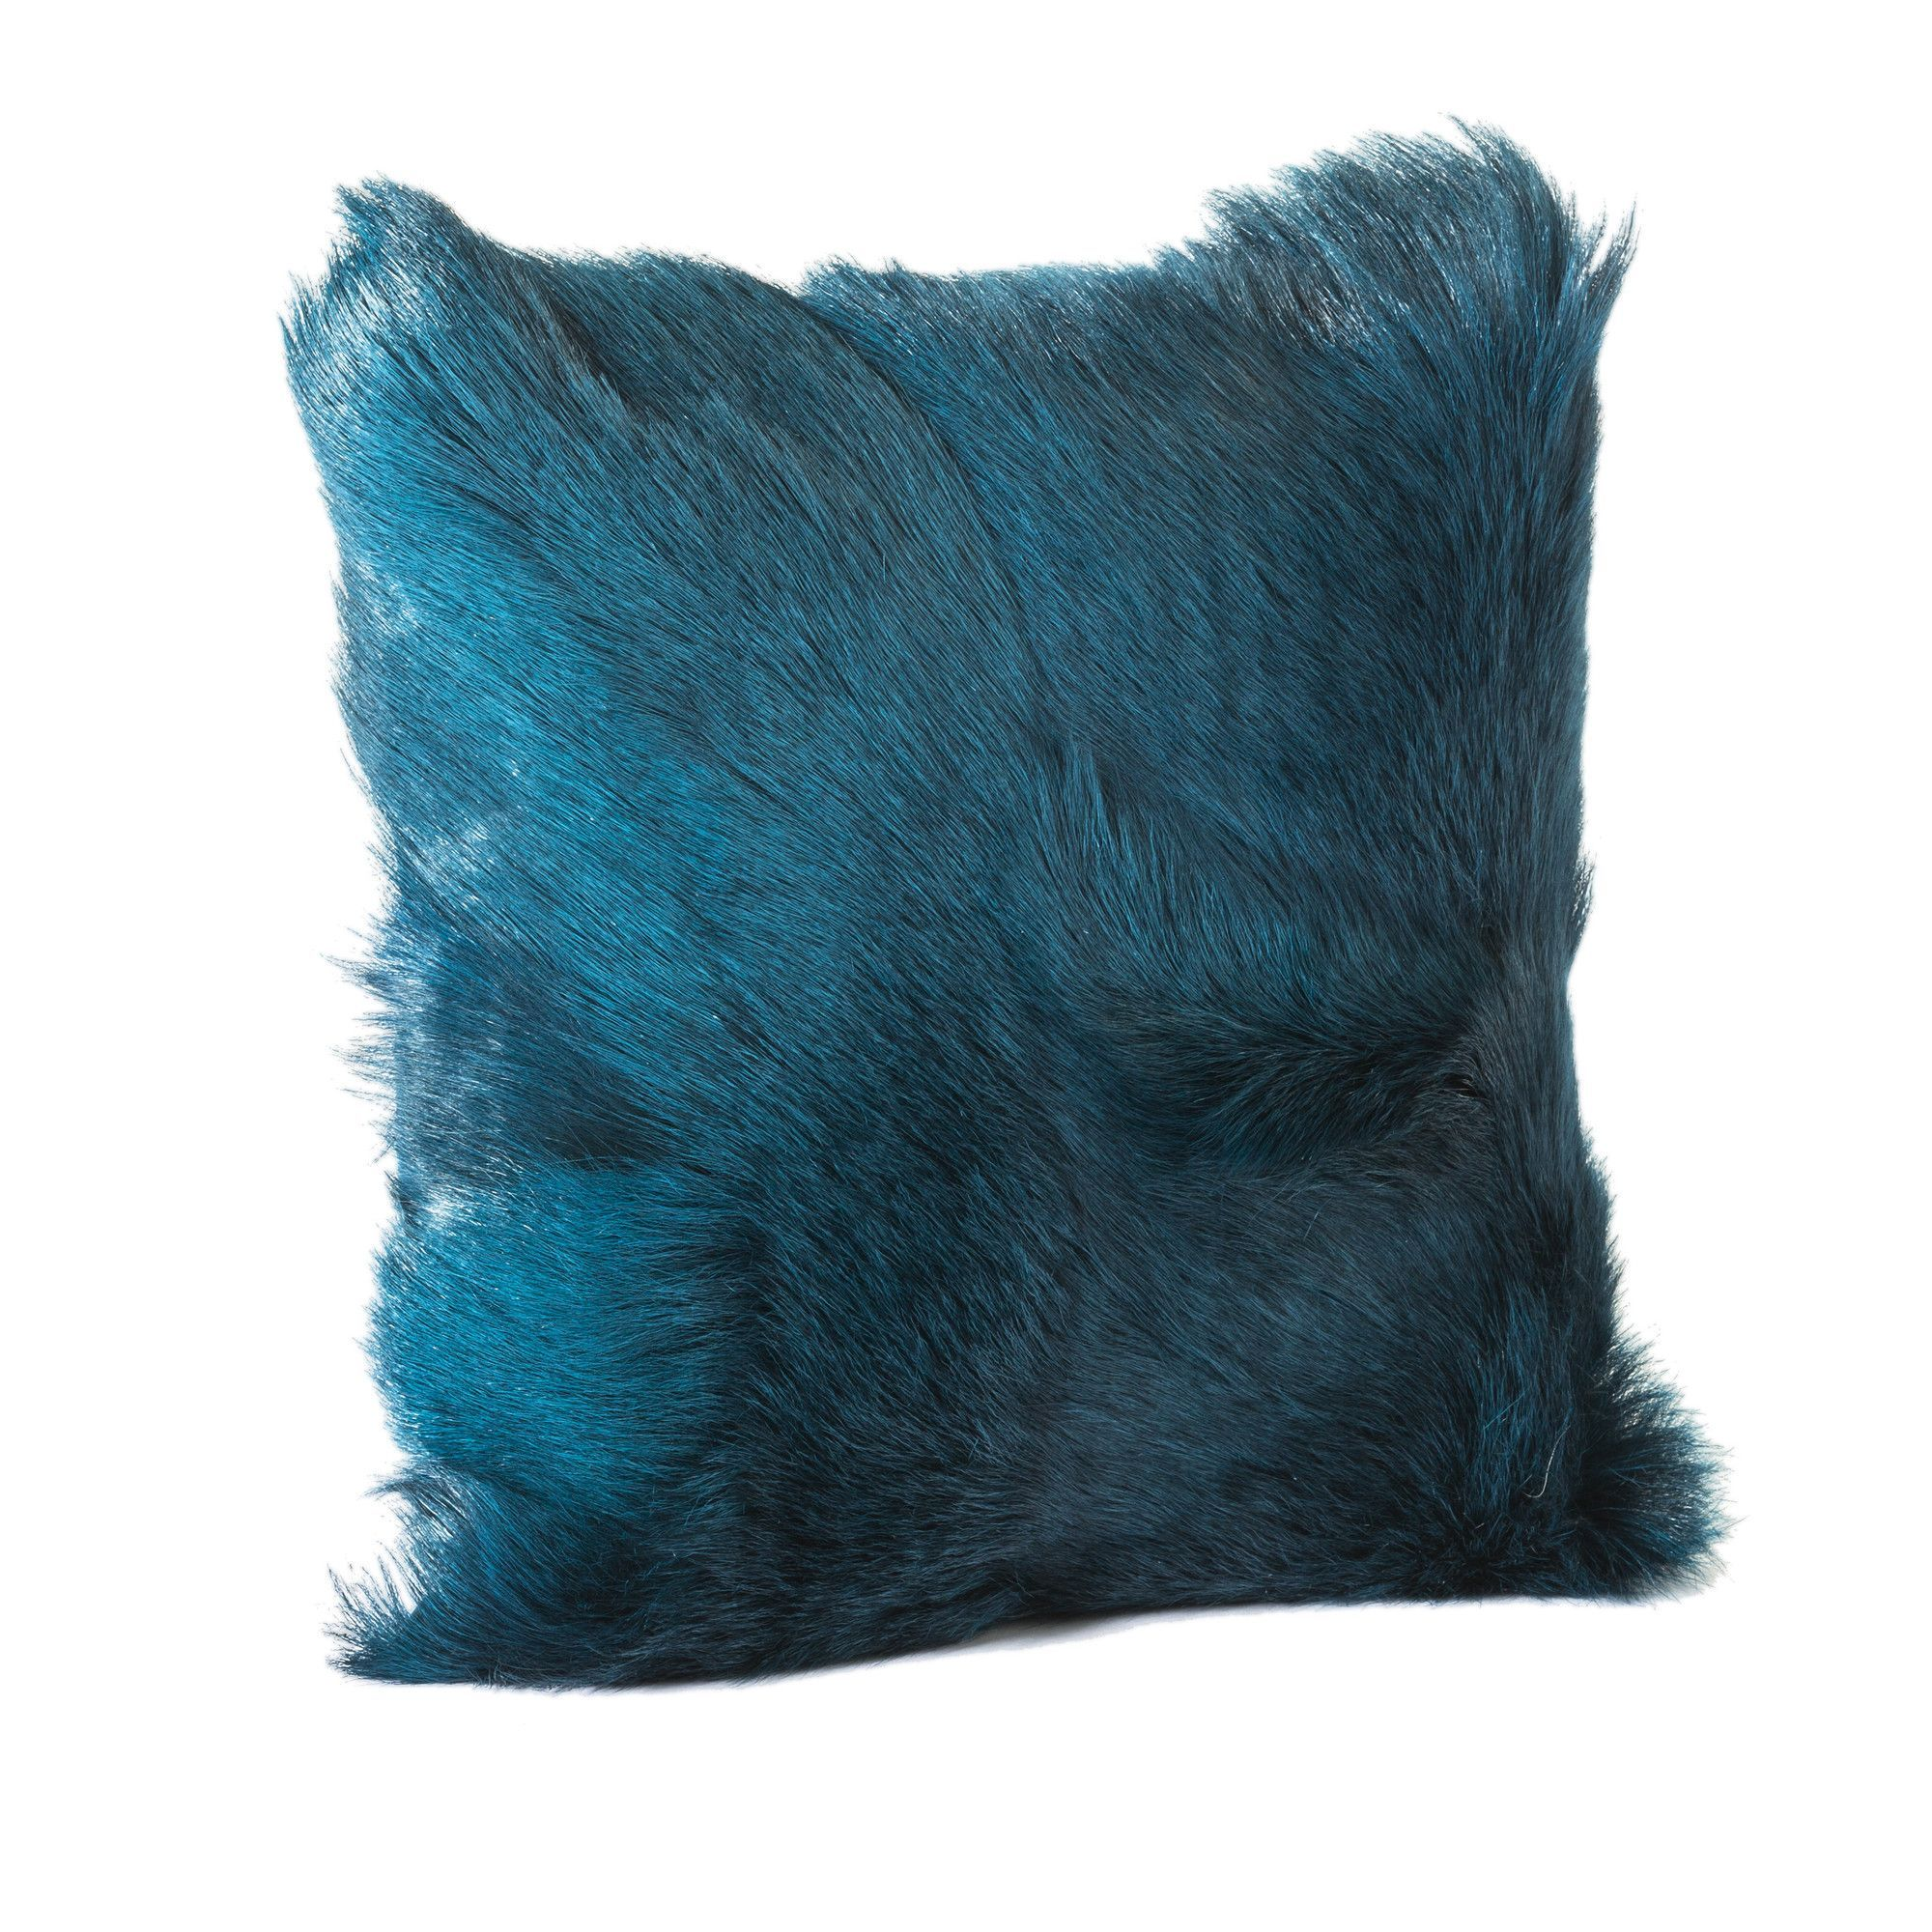 Faux Fur Pillow And Throw Set.Atlantic Beach Goat Faux Fur Throw Pillow House Ideas